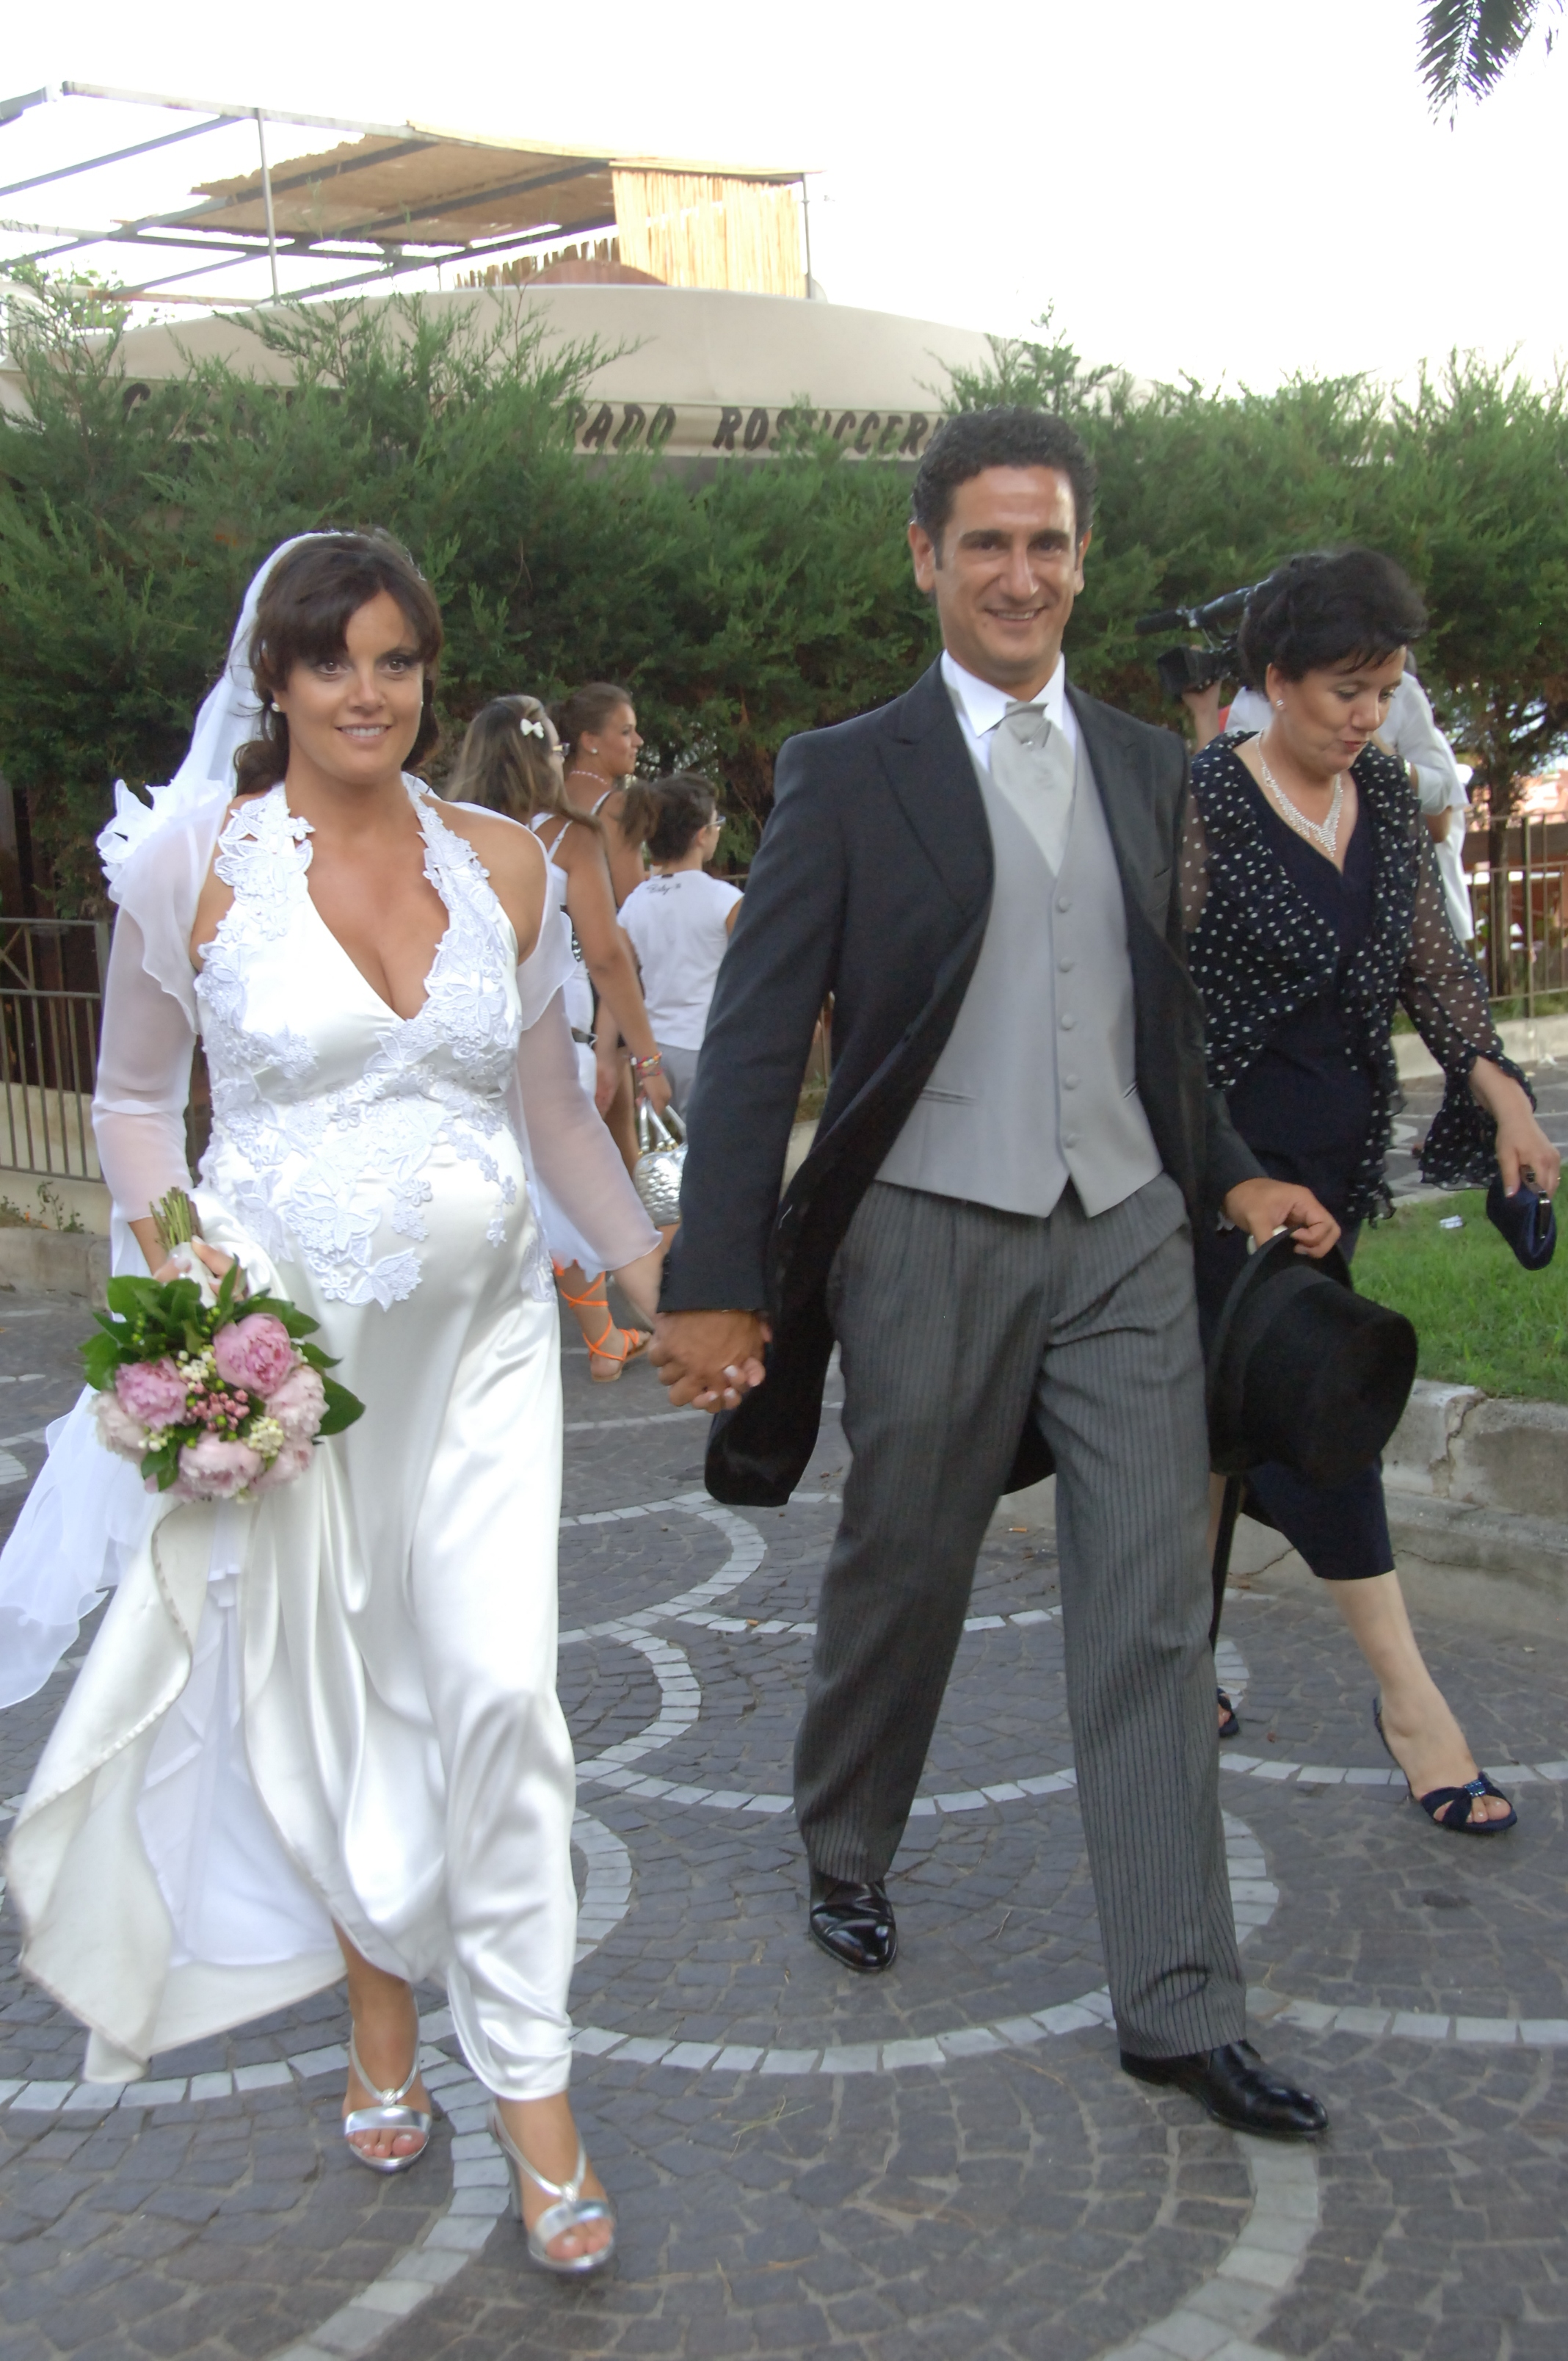 http://www.weddingamalfi.com/wp-content/uploads/Enza-and-Mario-12.jpg